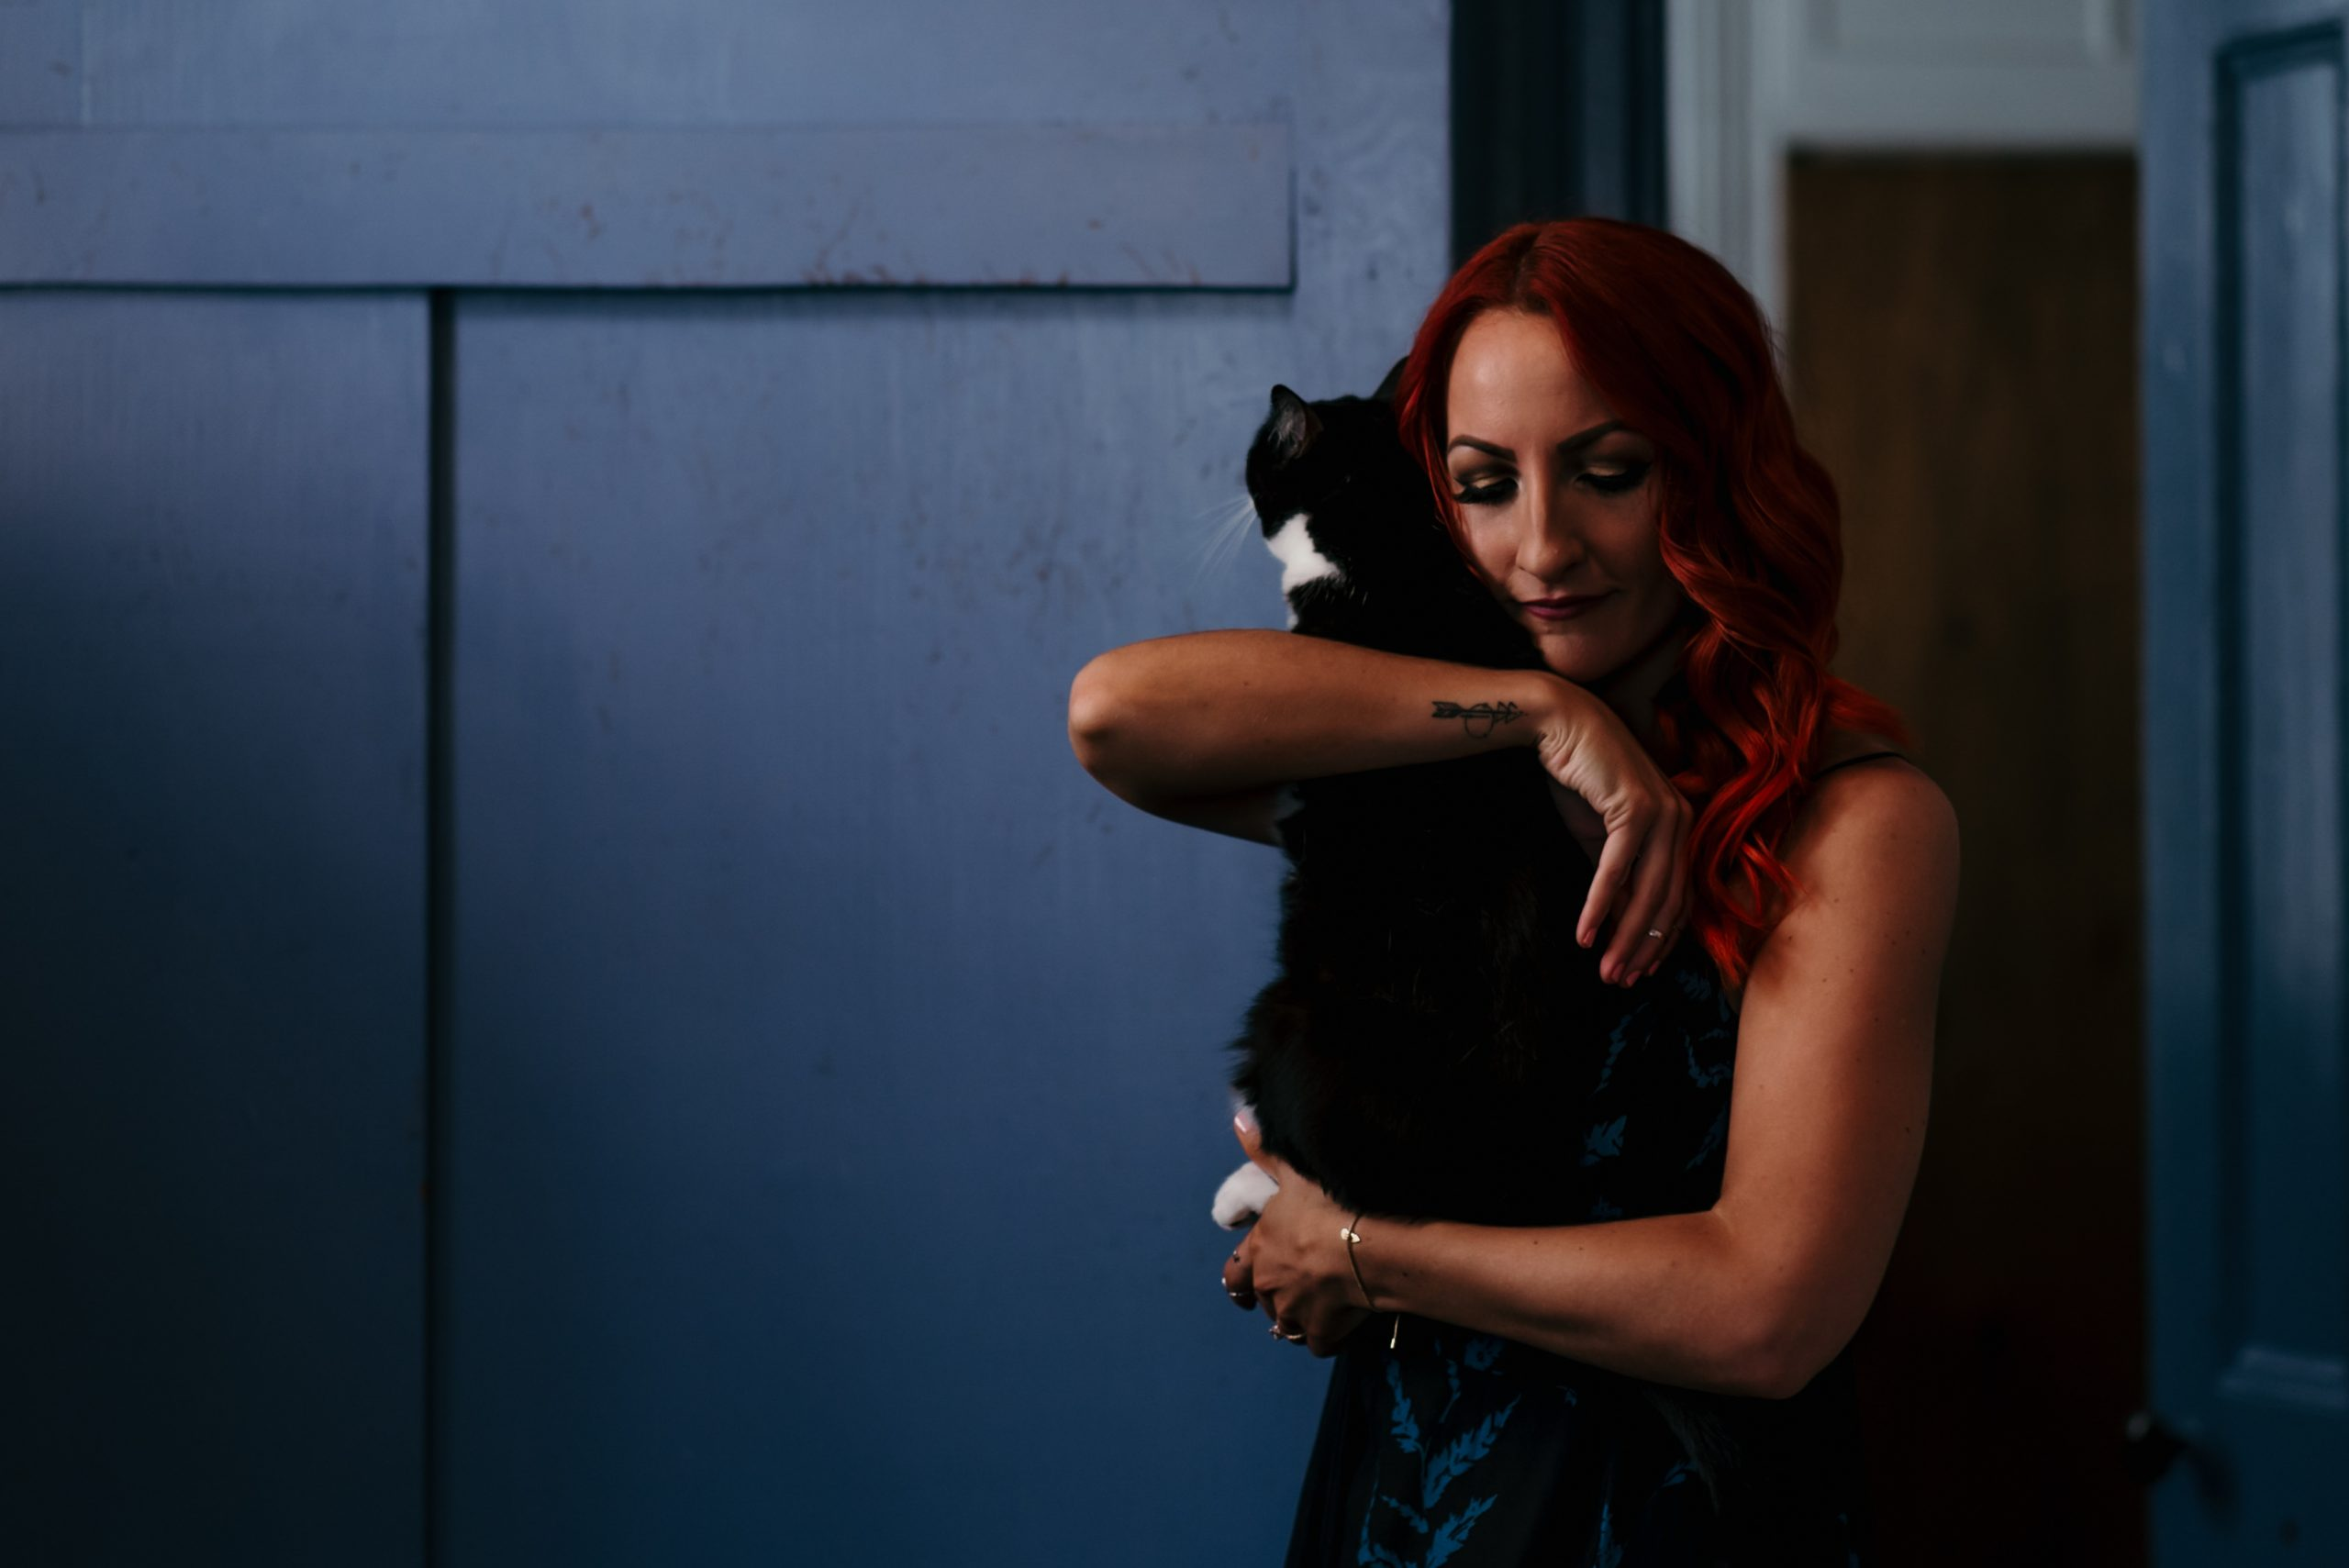 cat-mom-with-red-hair-moody-photo-shoot-brooklyn-photographer-suess-moments